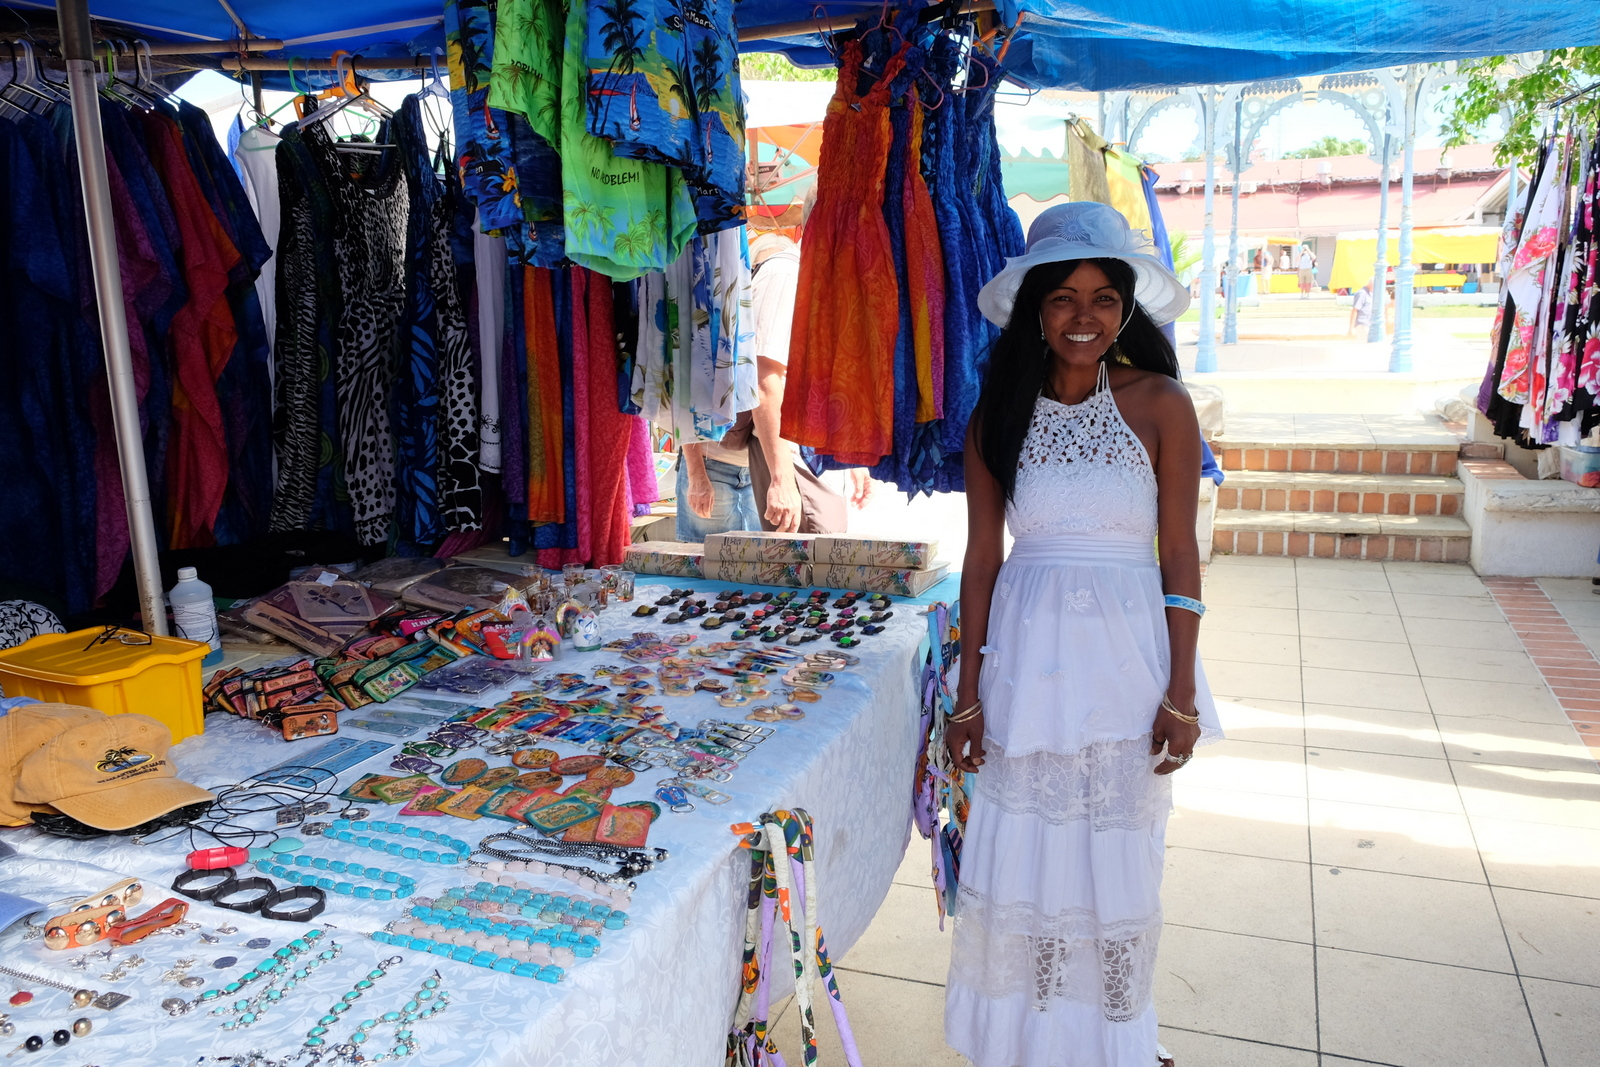 You can find all sorts of treasures at the markets in Marigot, St. Martin. You also might get a great smile. - JIM BYERS PHOTO